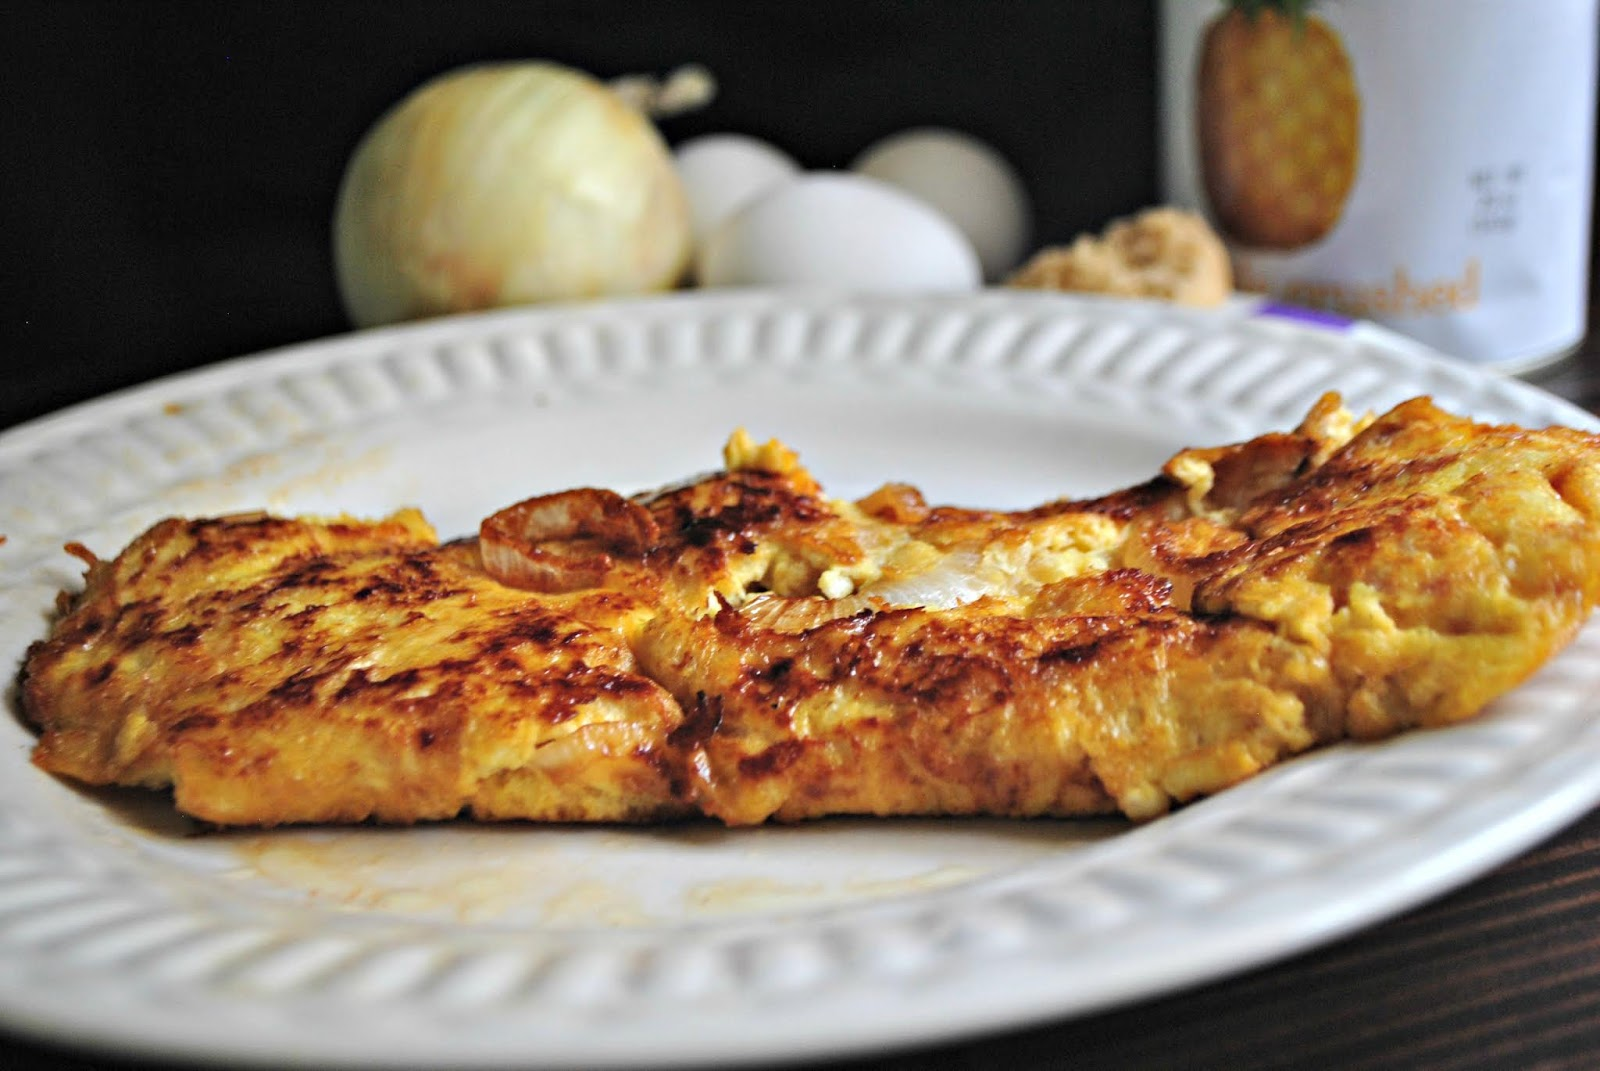 Sweet breakfast omelette recipe with Hawaiian flavors from onion, brown sugar, and pineapple